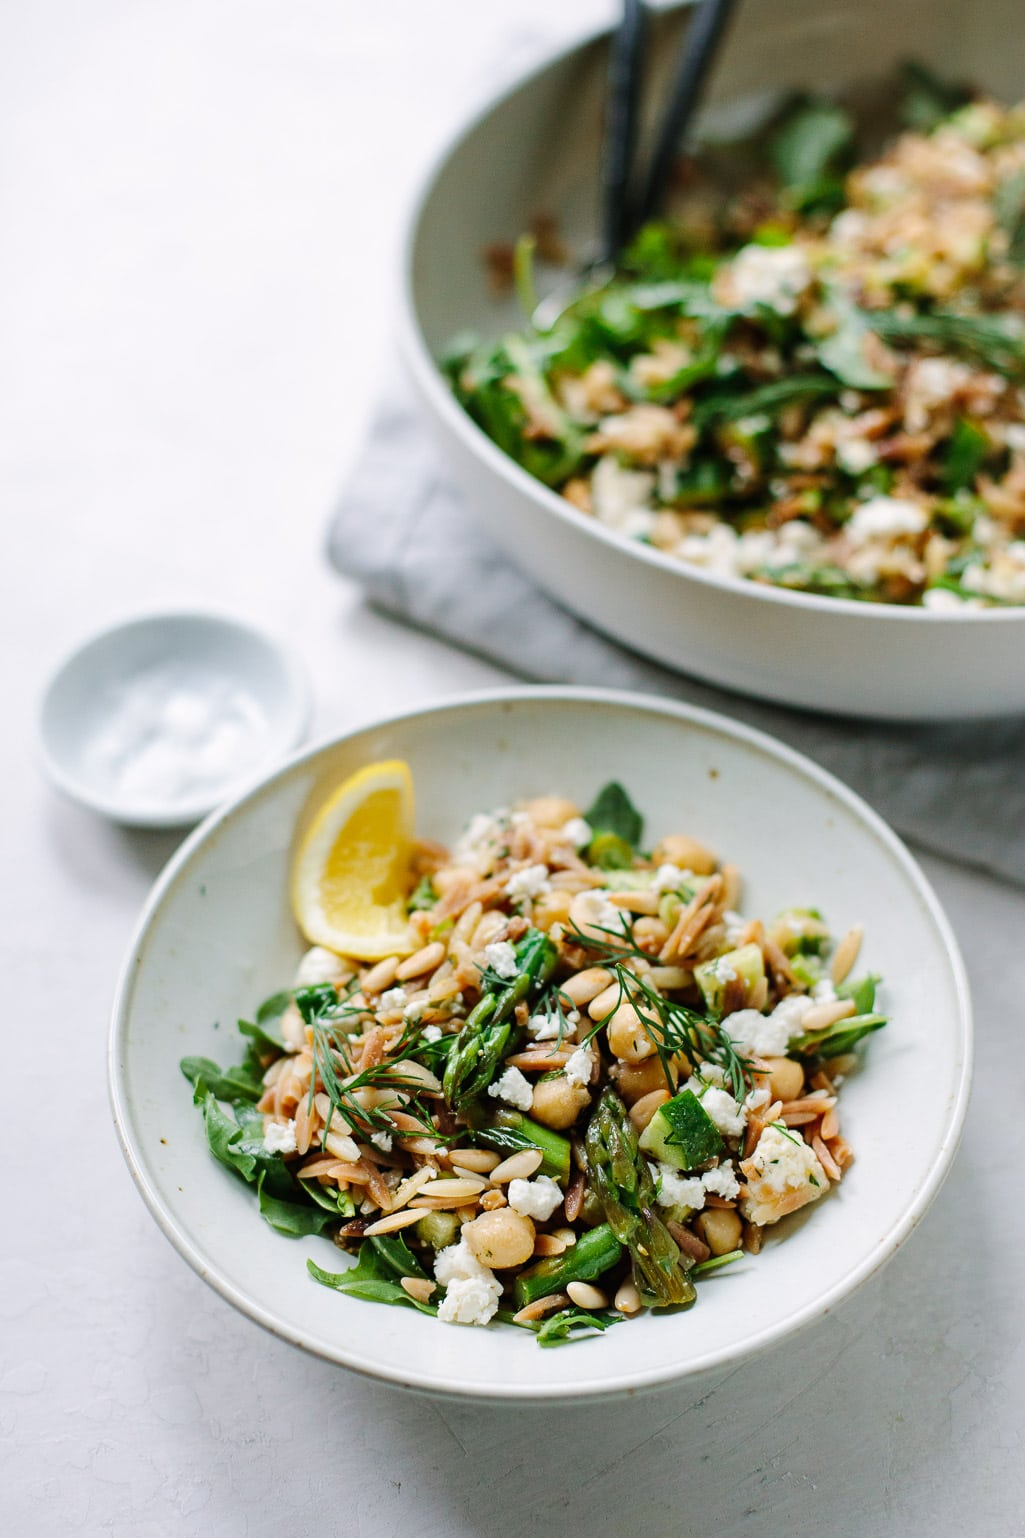 Fresh Mediterranean Toasted Orzo Salad with Asparagus and Feta